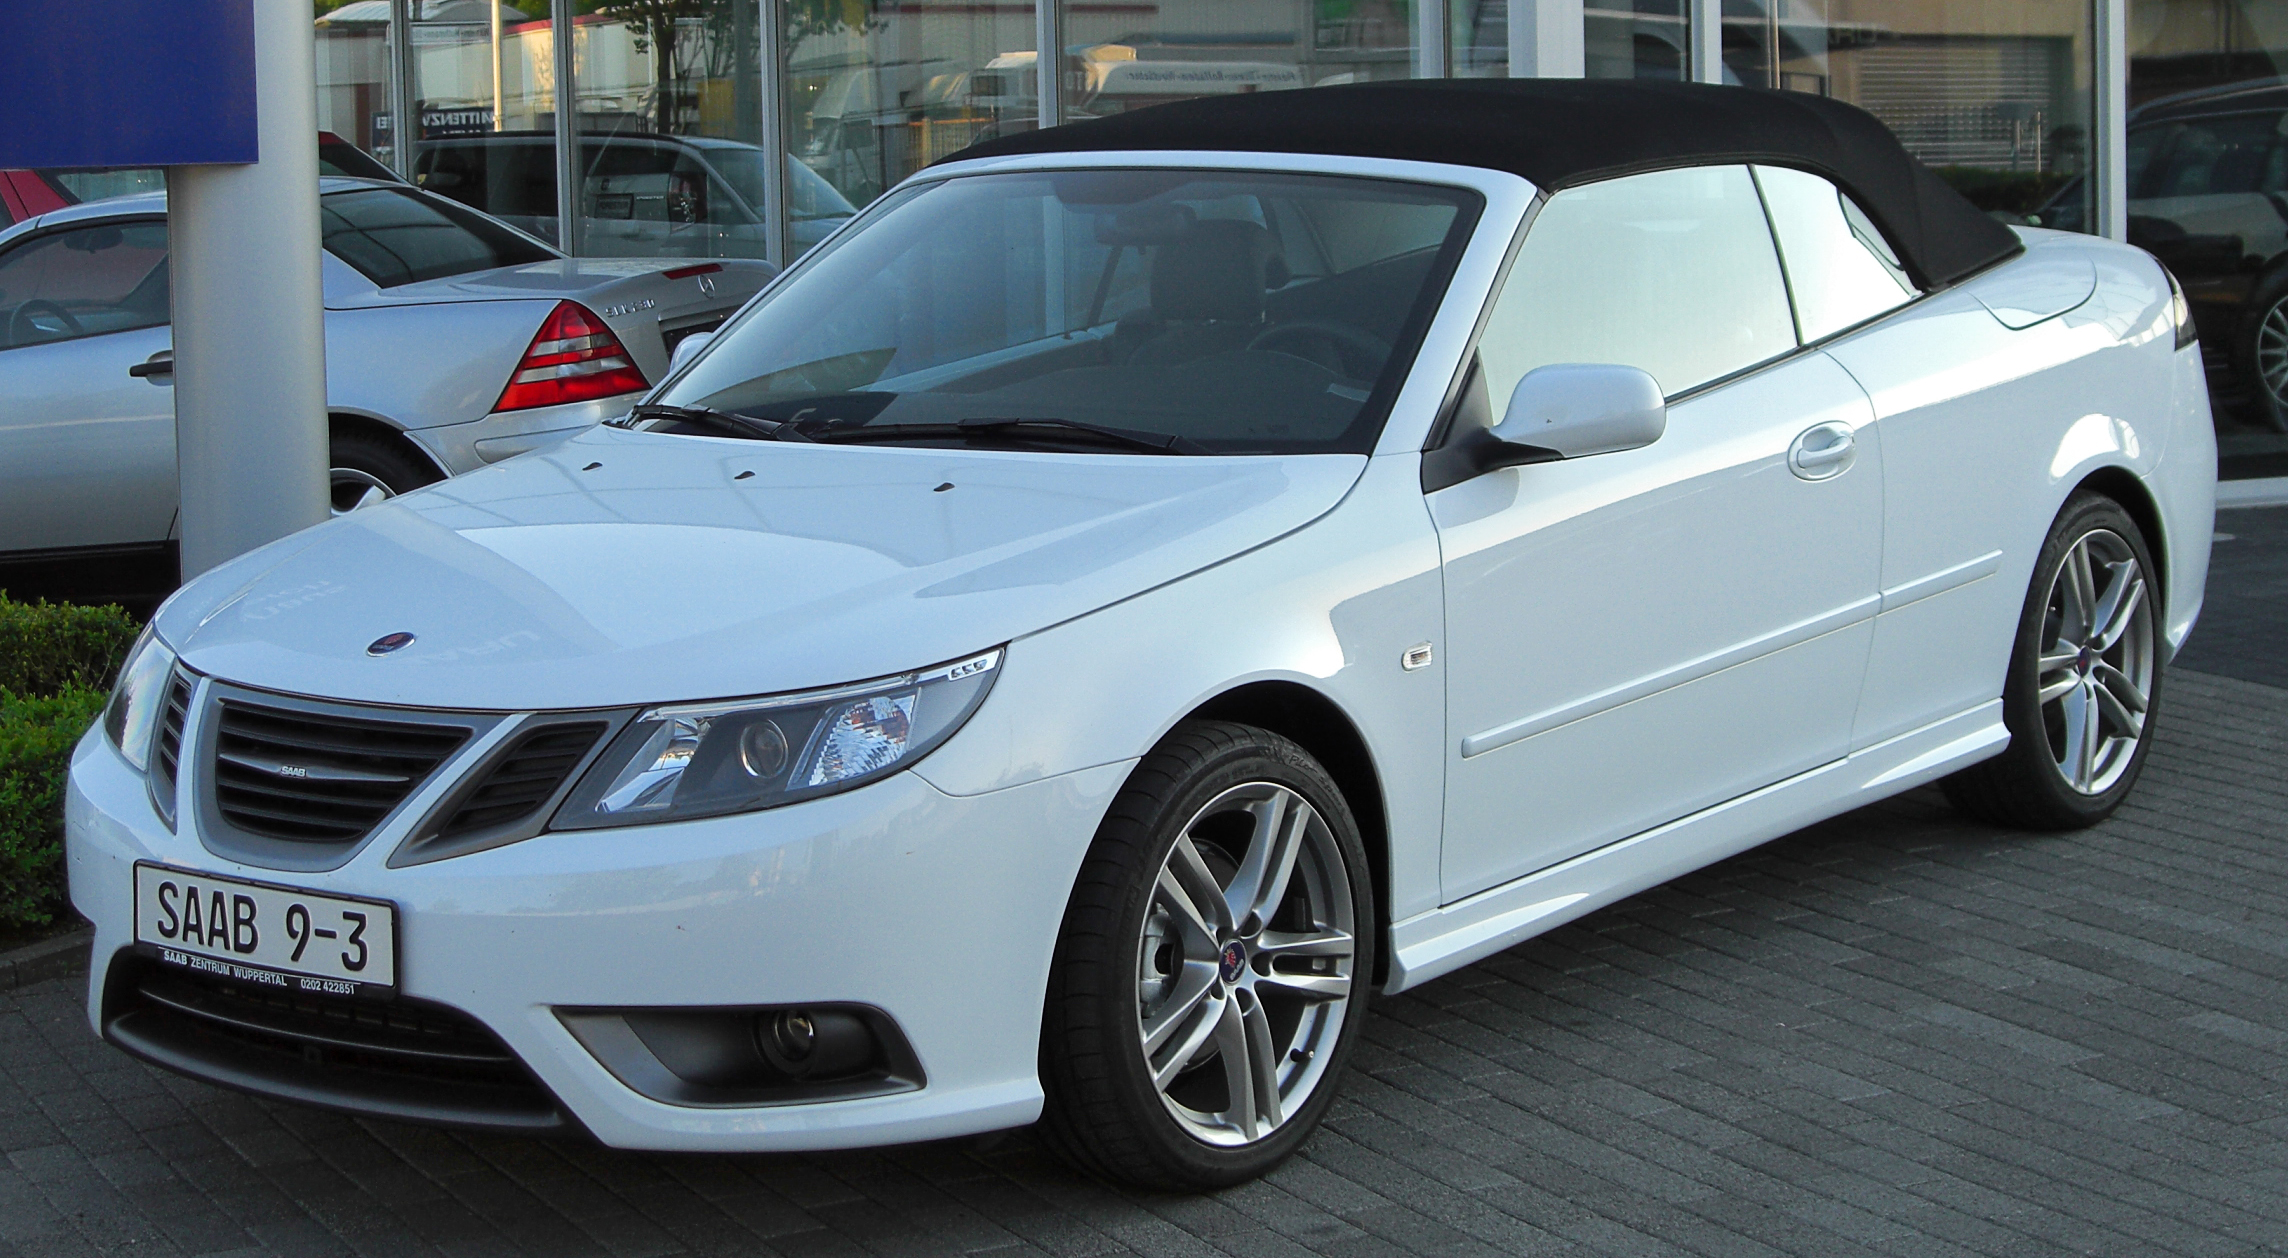 file saab 9 3 cabriolet ii facelift front wikimedia commons. Black Bedroom Furniture Sets. Home Design Ideas